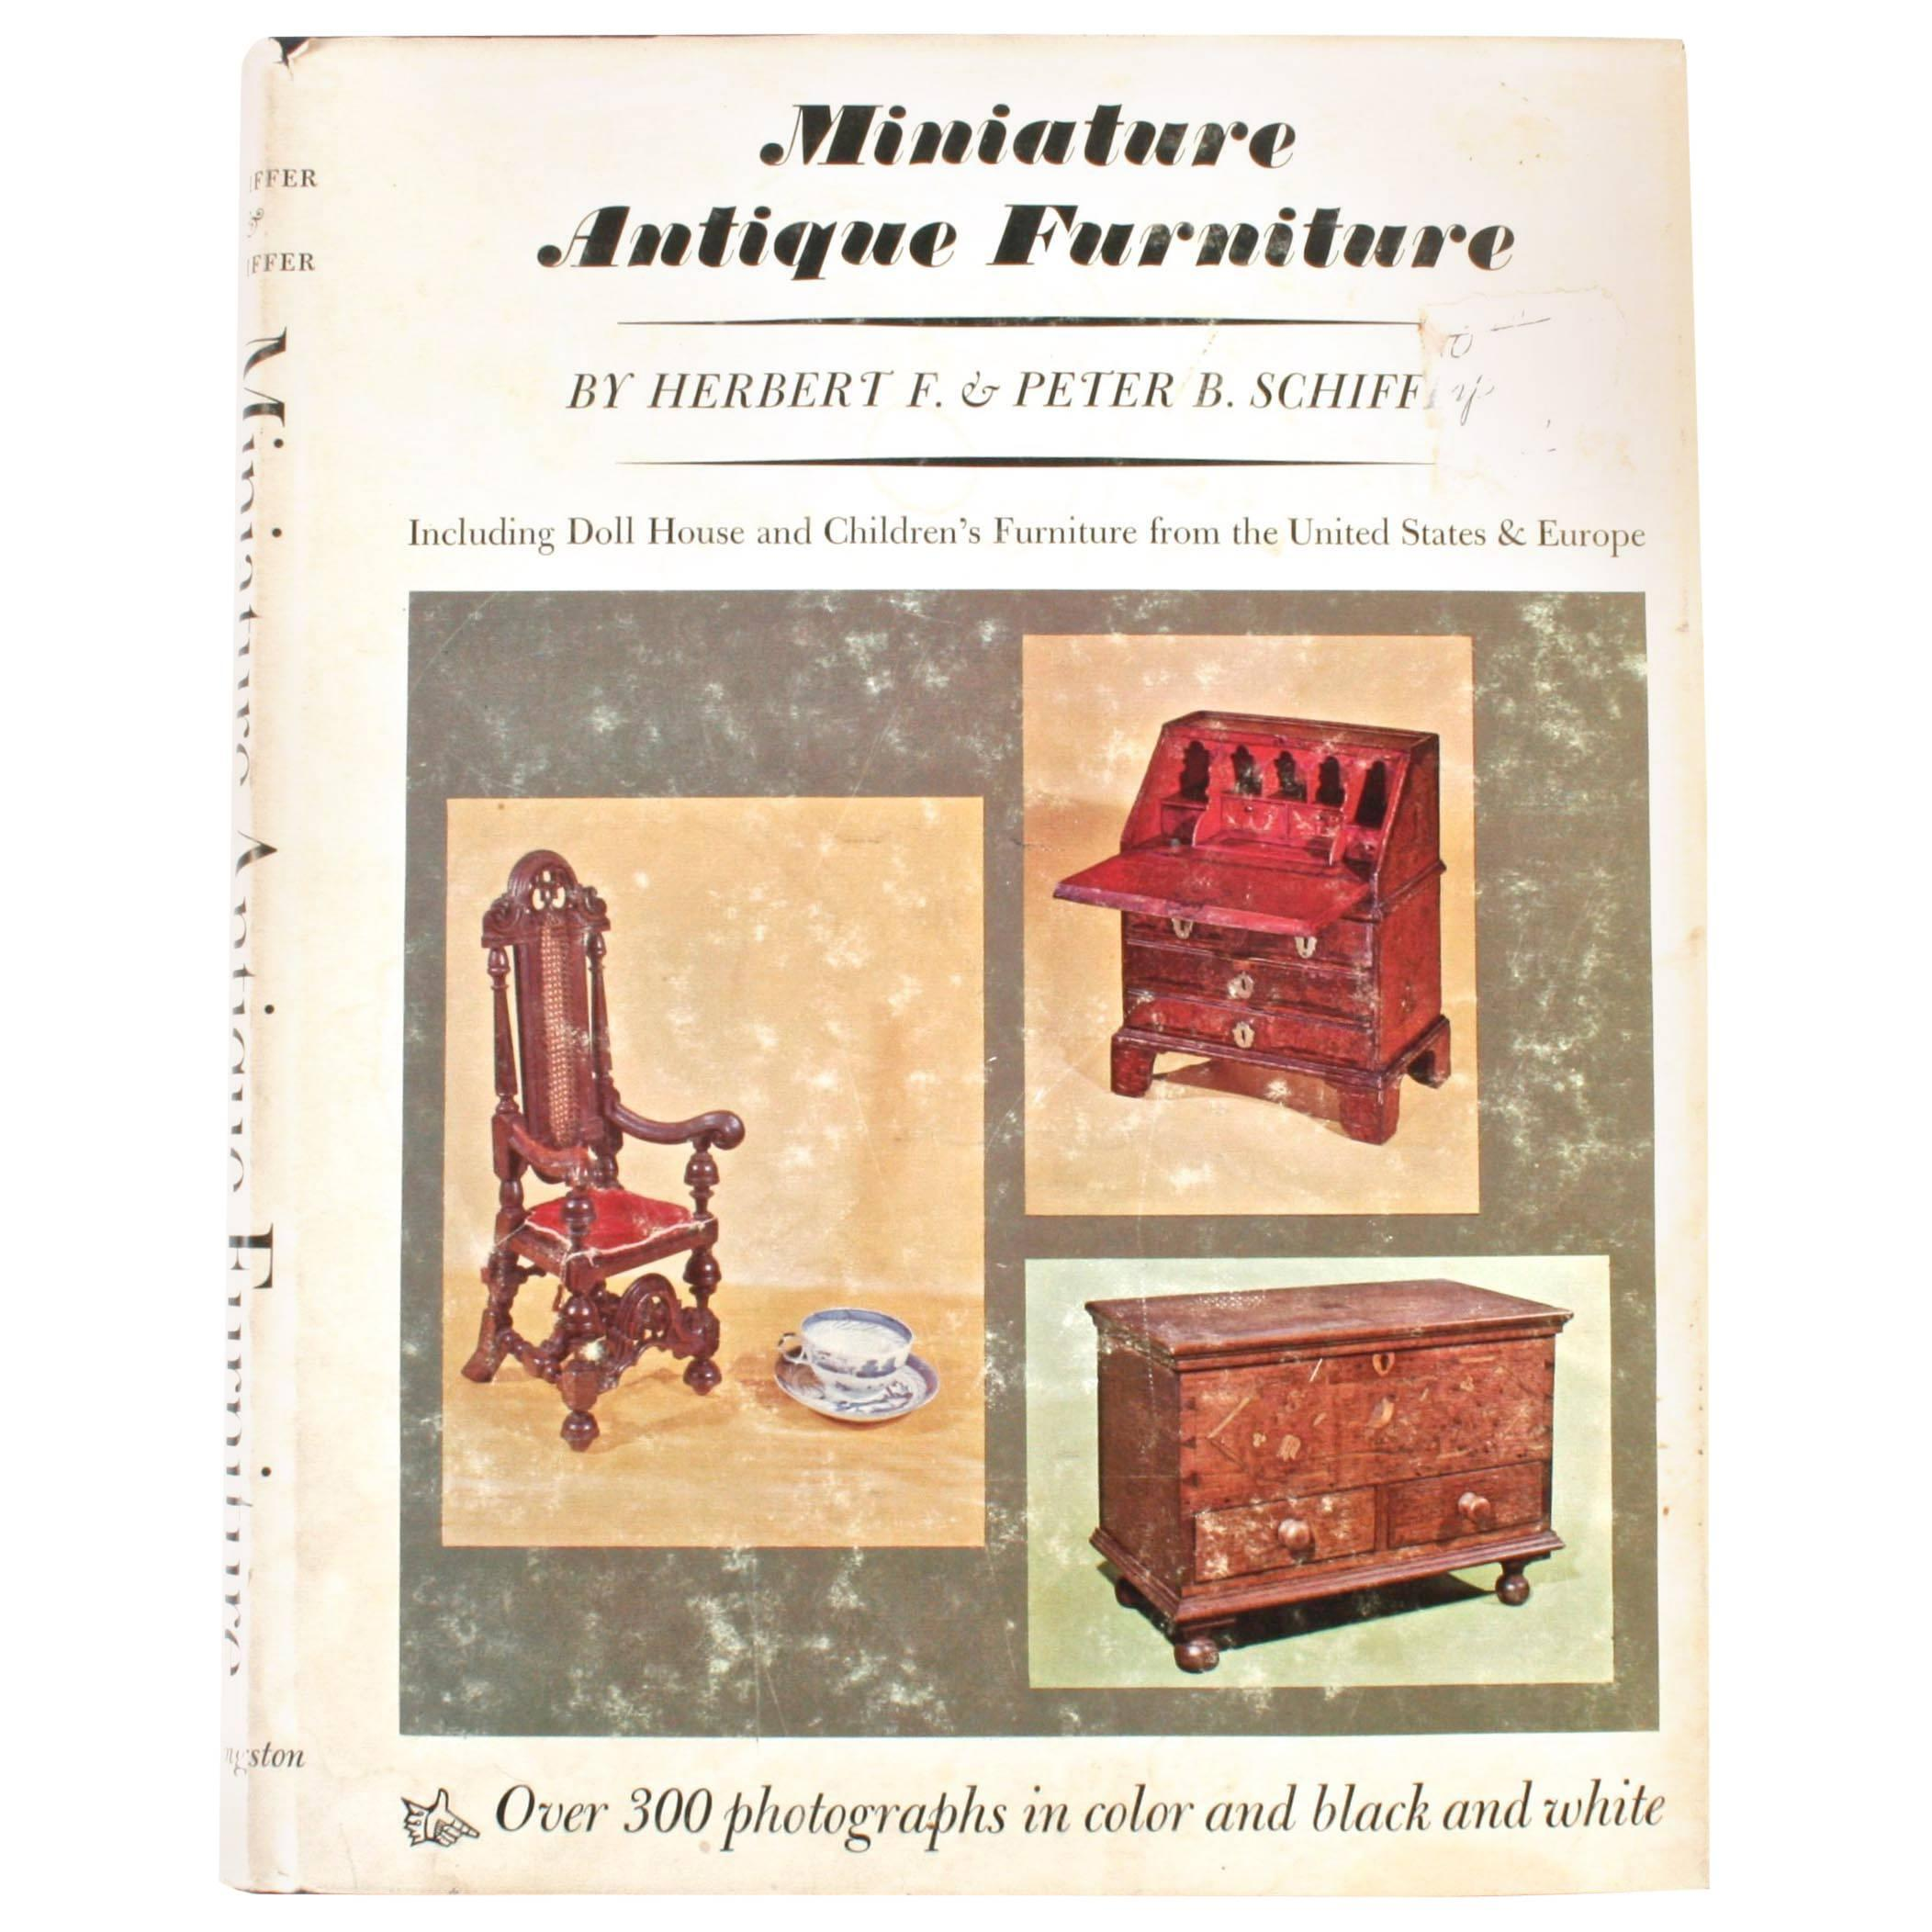 Miniature Antique Furniture, First Edition